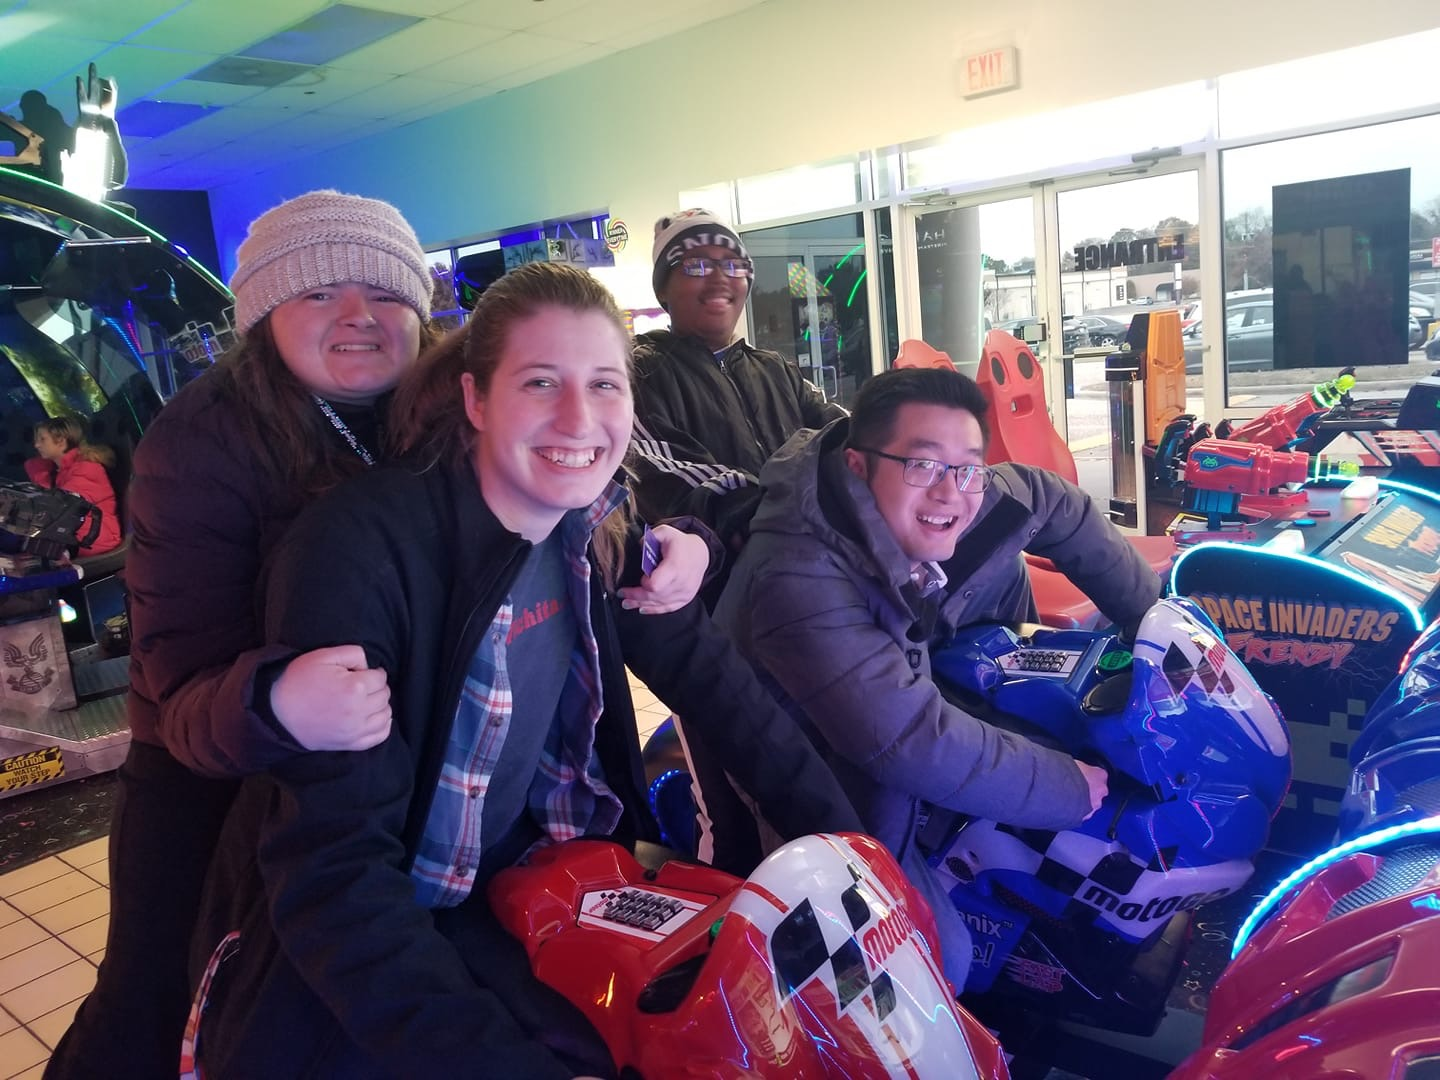 Group of people in arcade